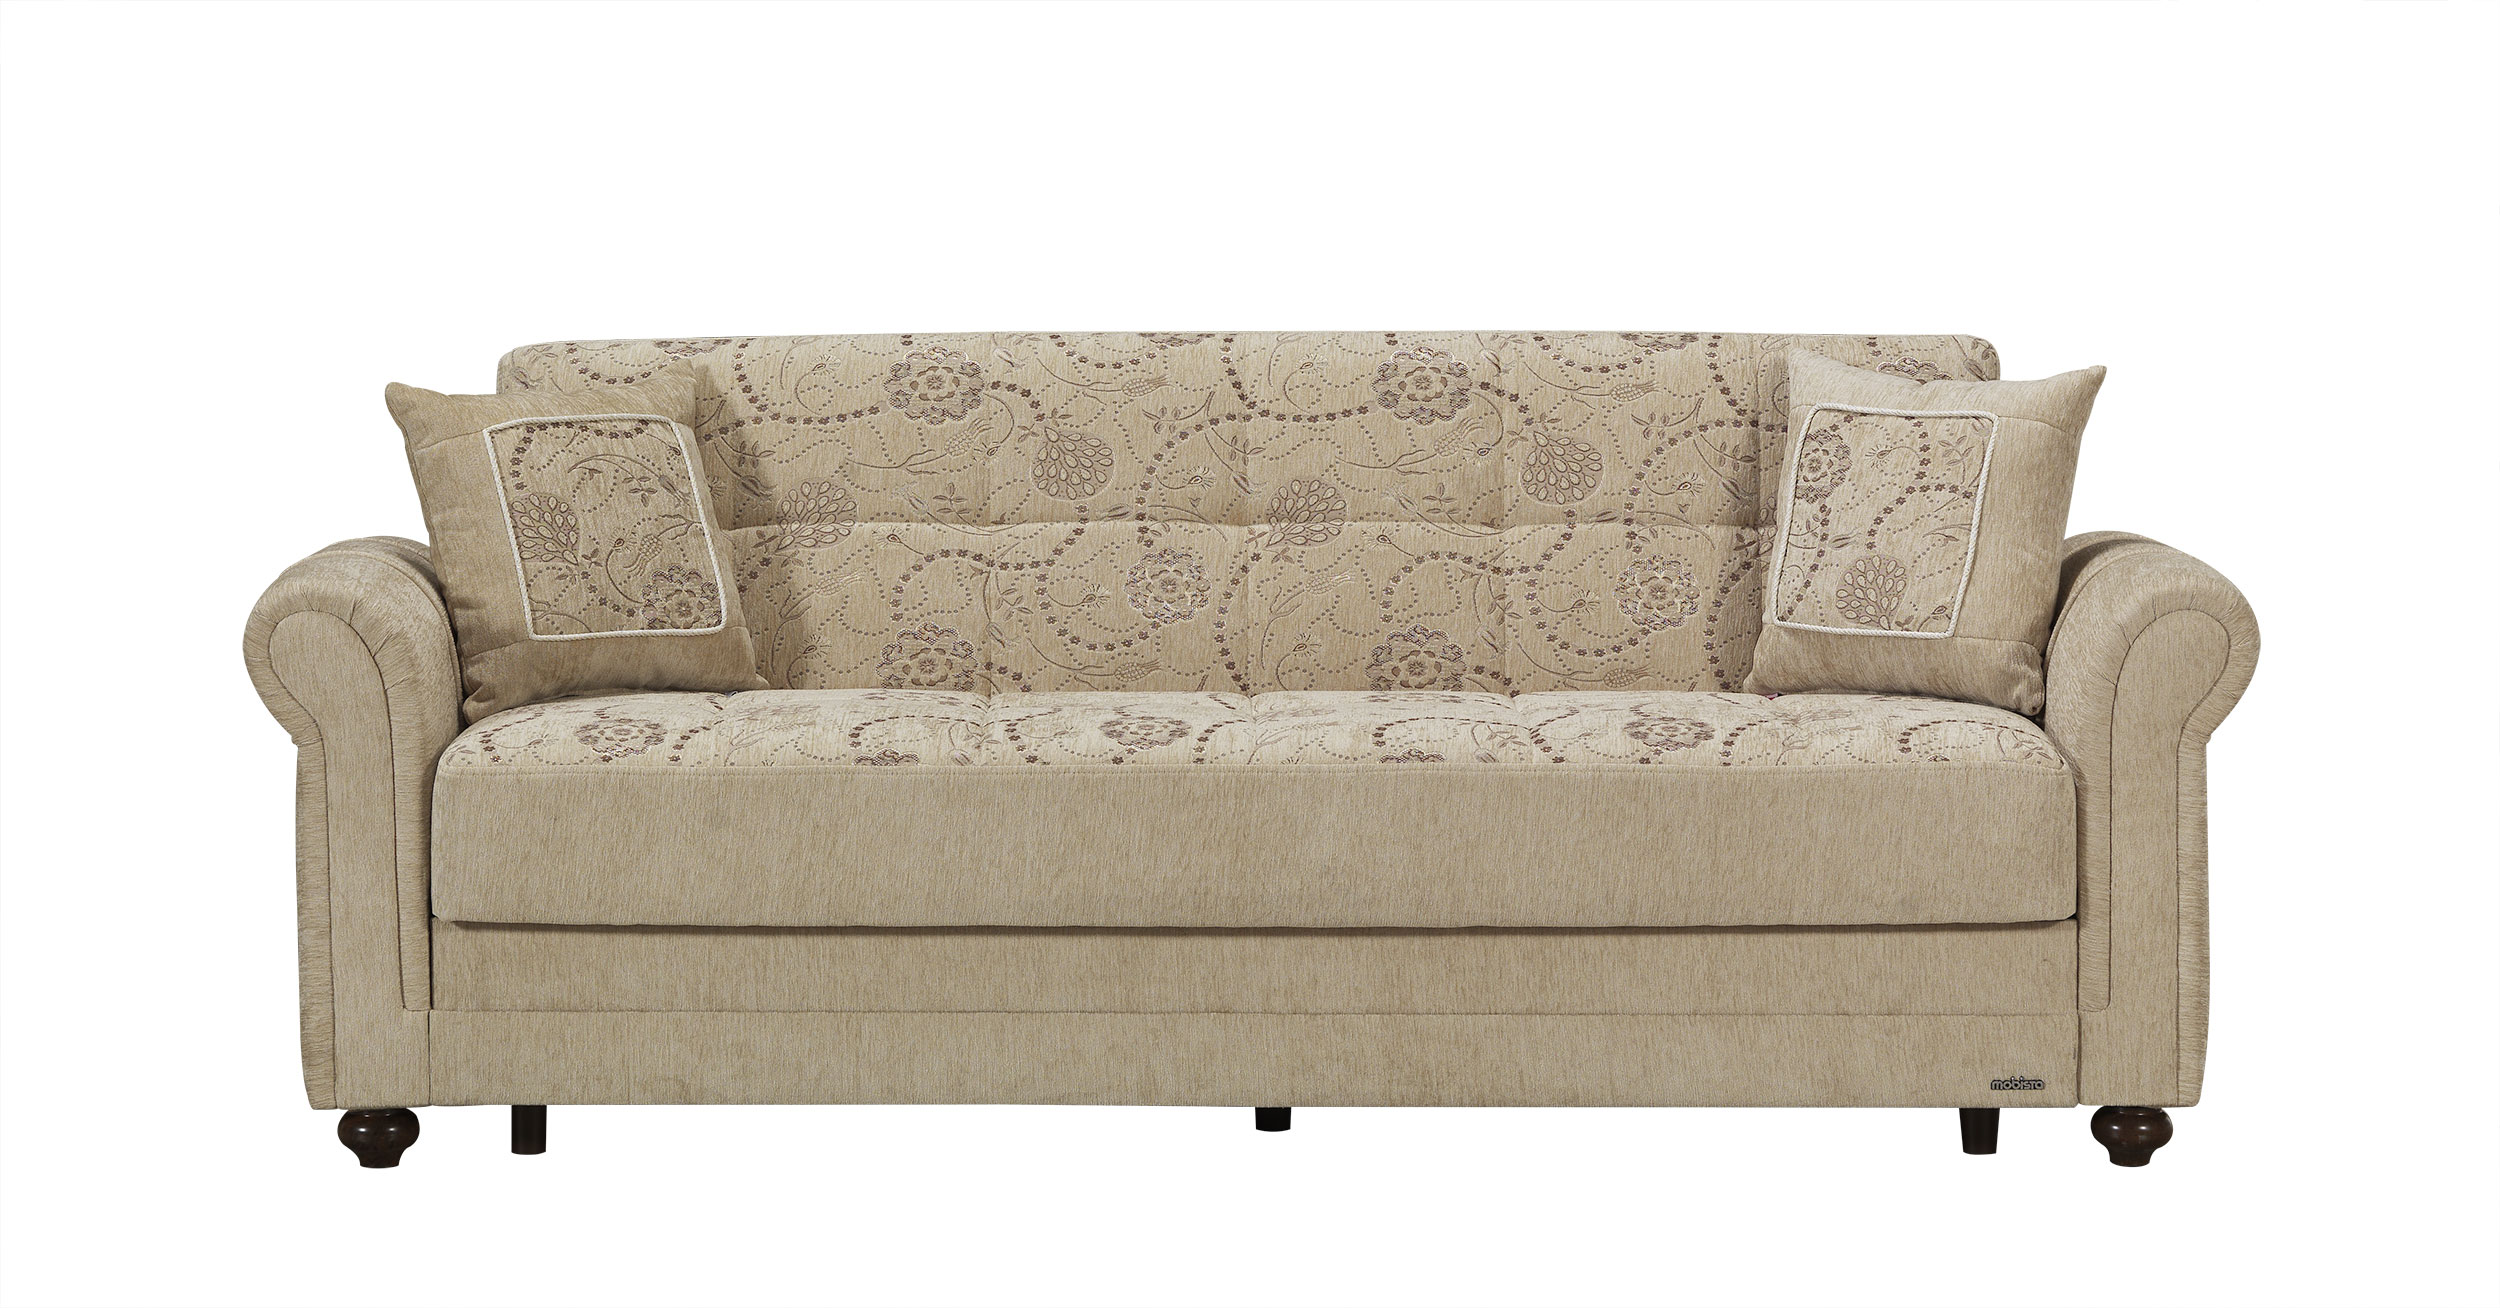 Regina home beige sofa bed by mobista for Sofa bed name